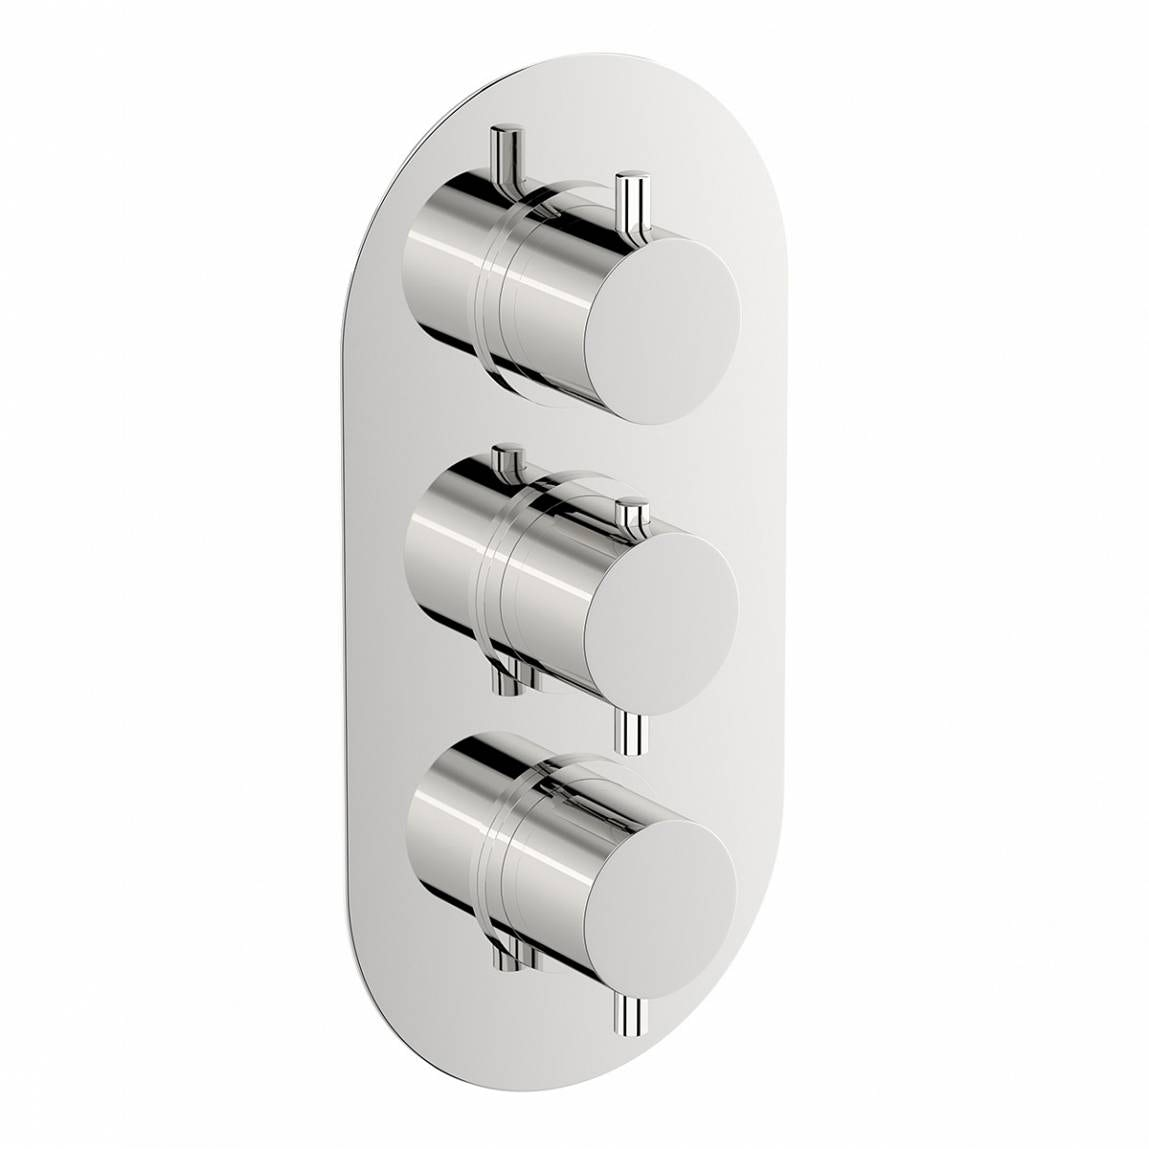 Mode Matrix oval triple thermostatic shower valve offer pack